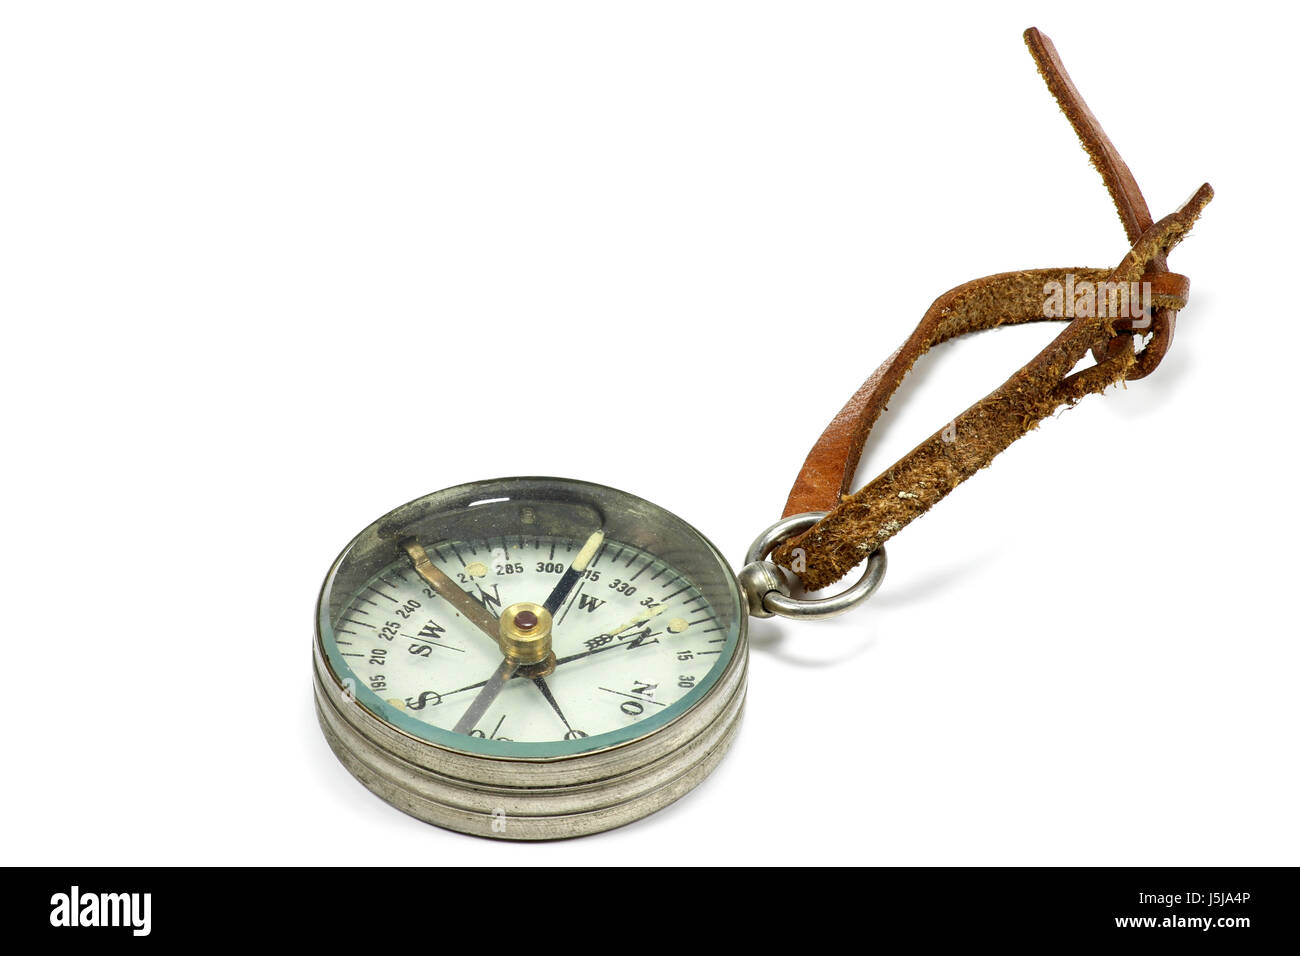 vintage portable compass isolated on white background - Stock Image